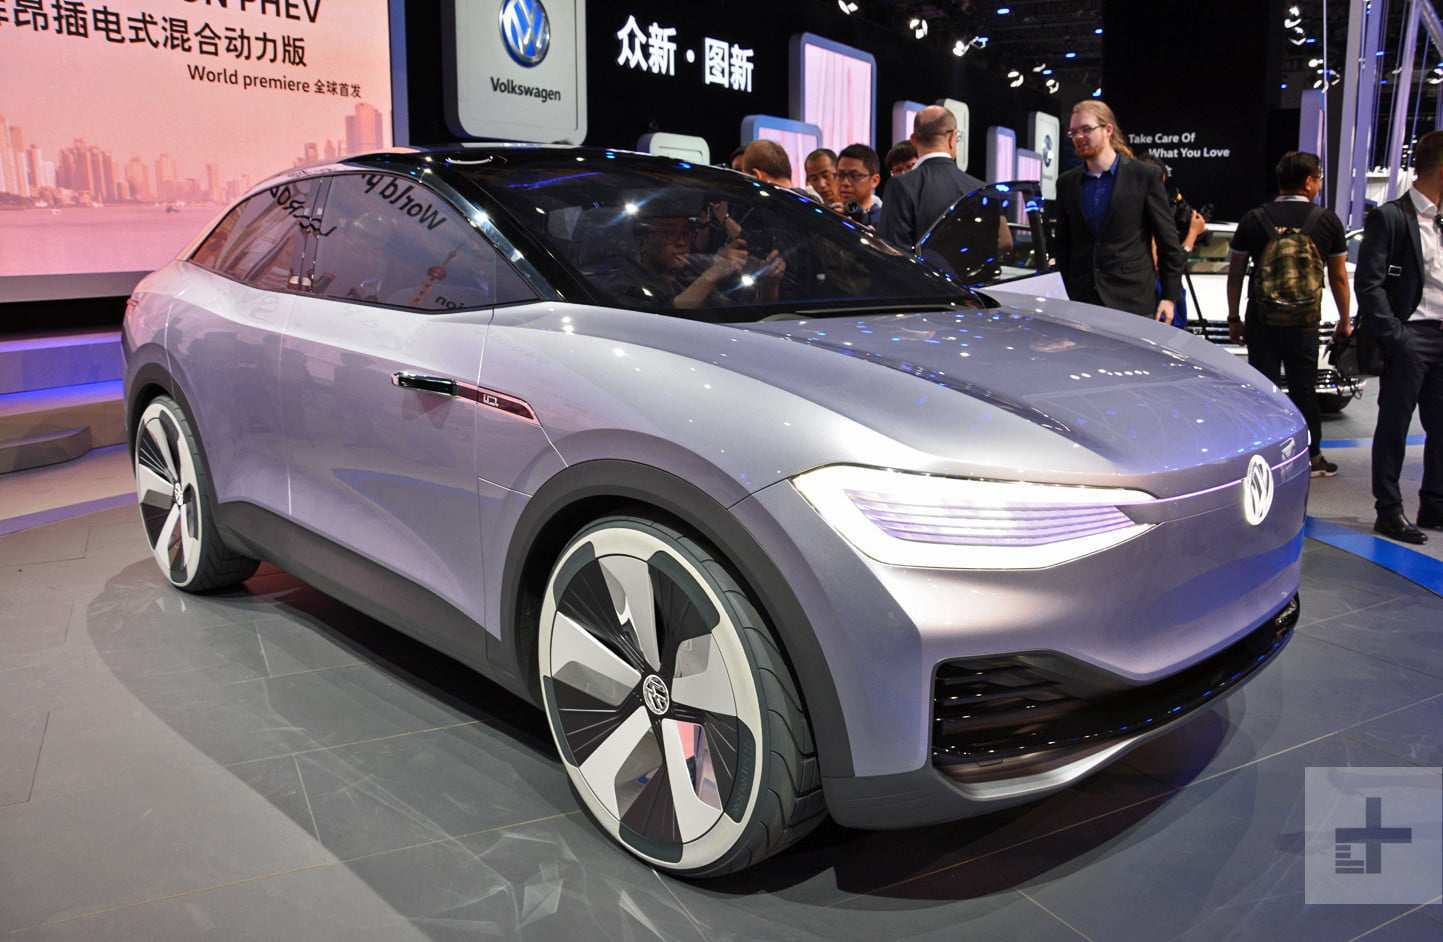 51 Gallery of Volkswagen Id Family 2020 Price for Volkswagen Id Family 2020